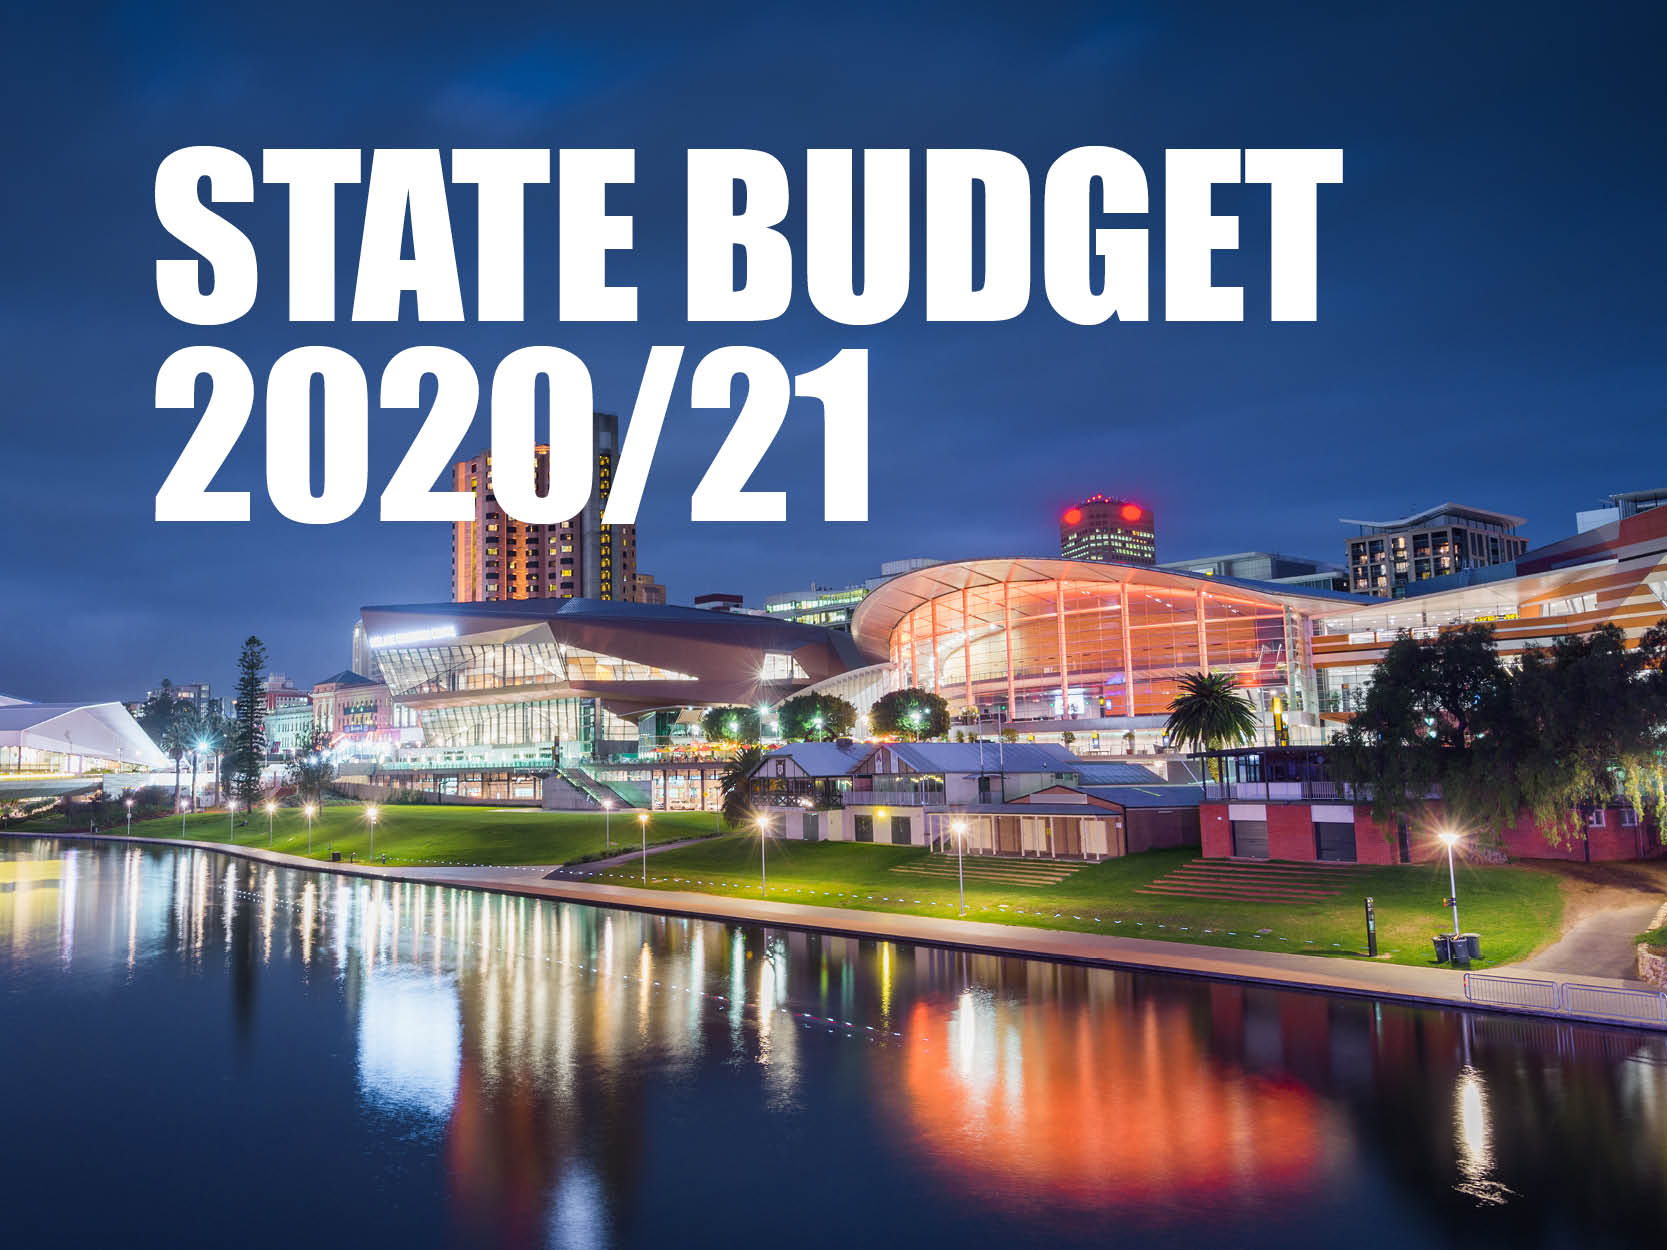 Media Release State Budget 2020/21